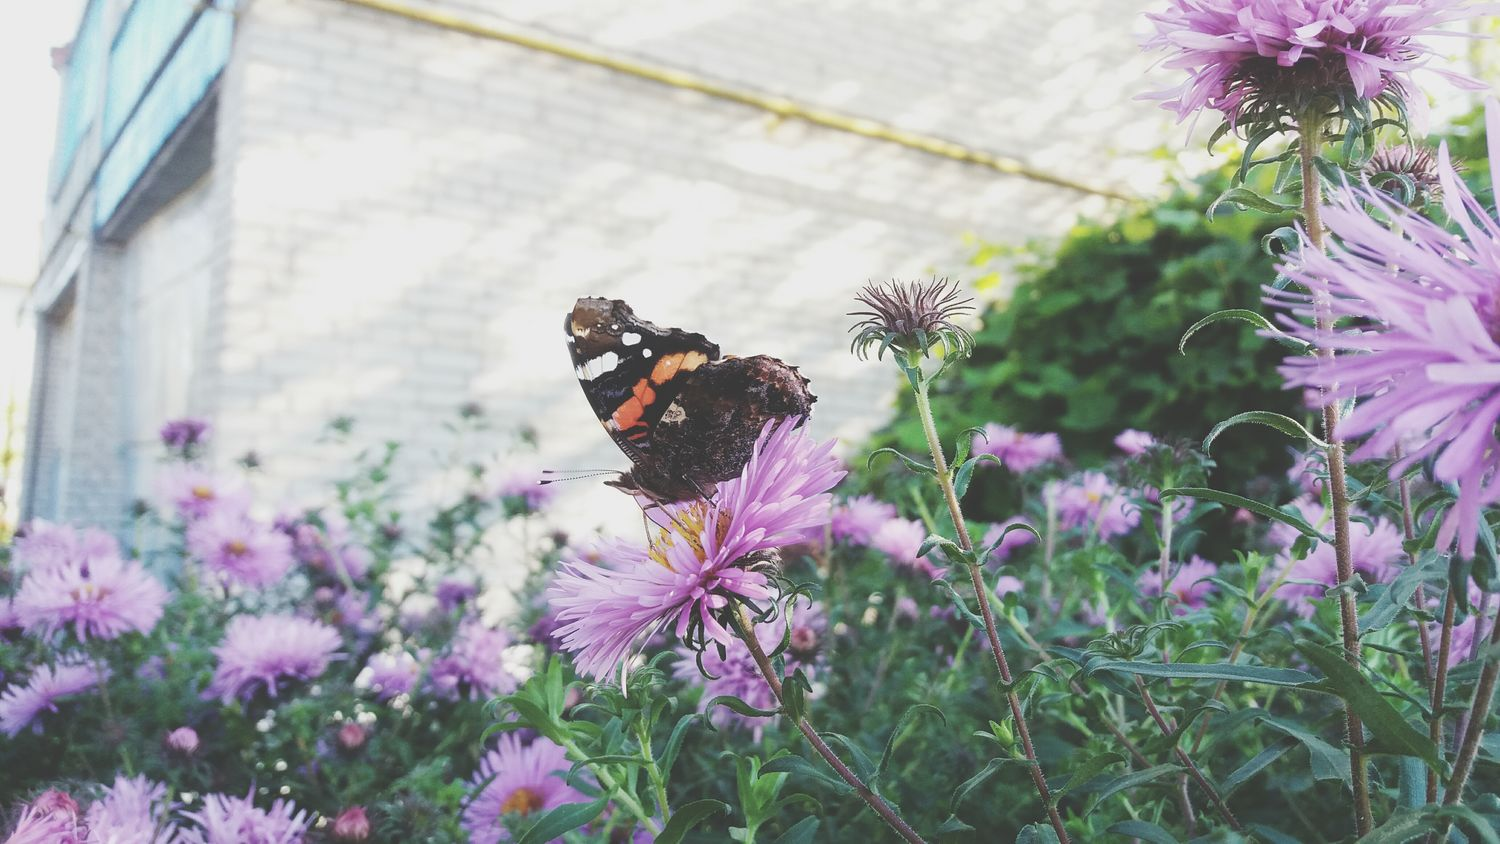 Sweet Buterflyflowers Flowers Love Doing Photos Love Love Love <3 Picturesque LIKE THIS PHOTO Animal Colour Of Nature